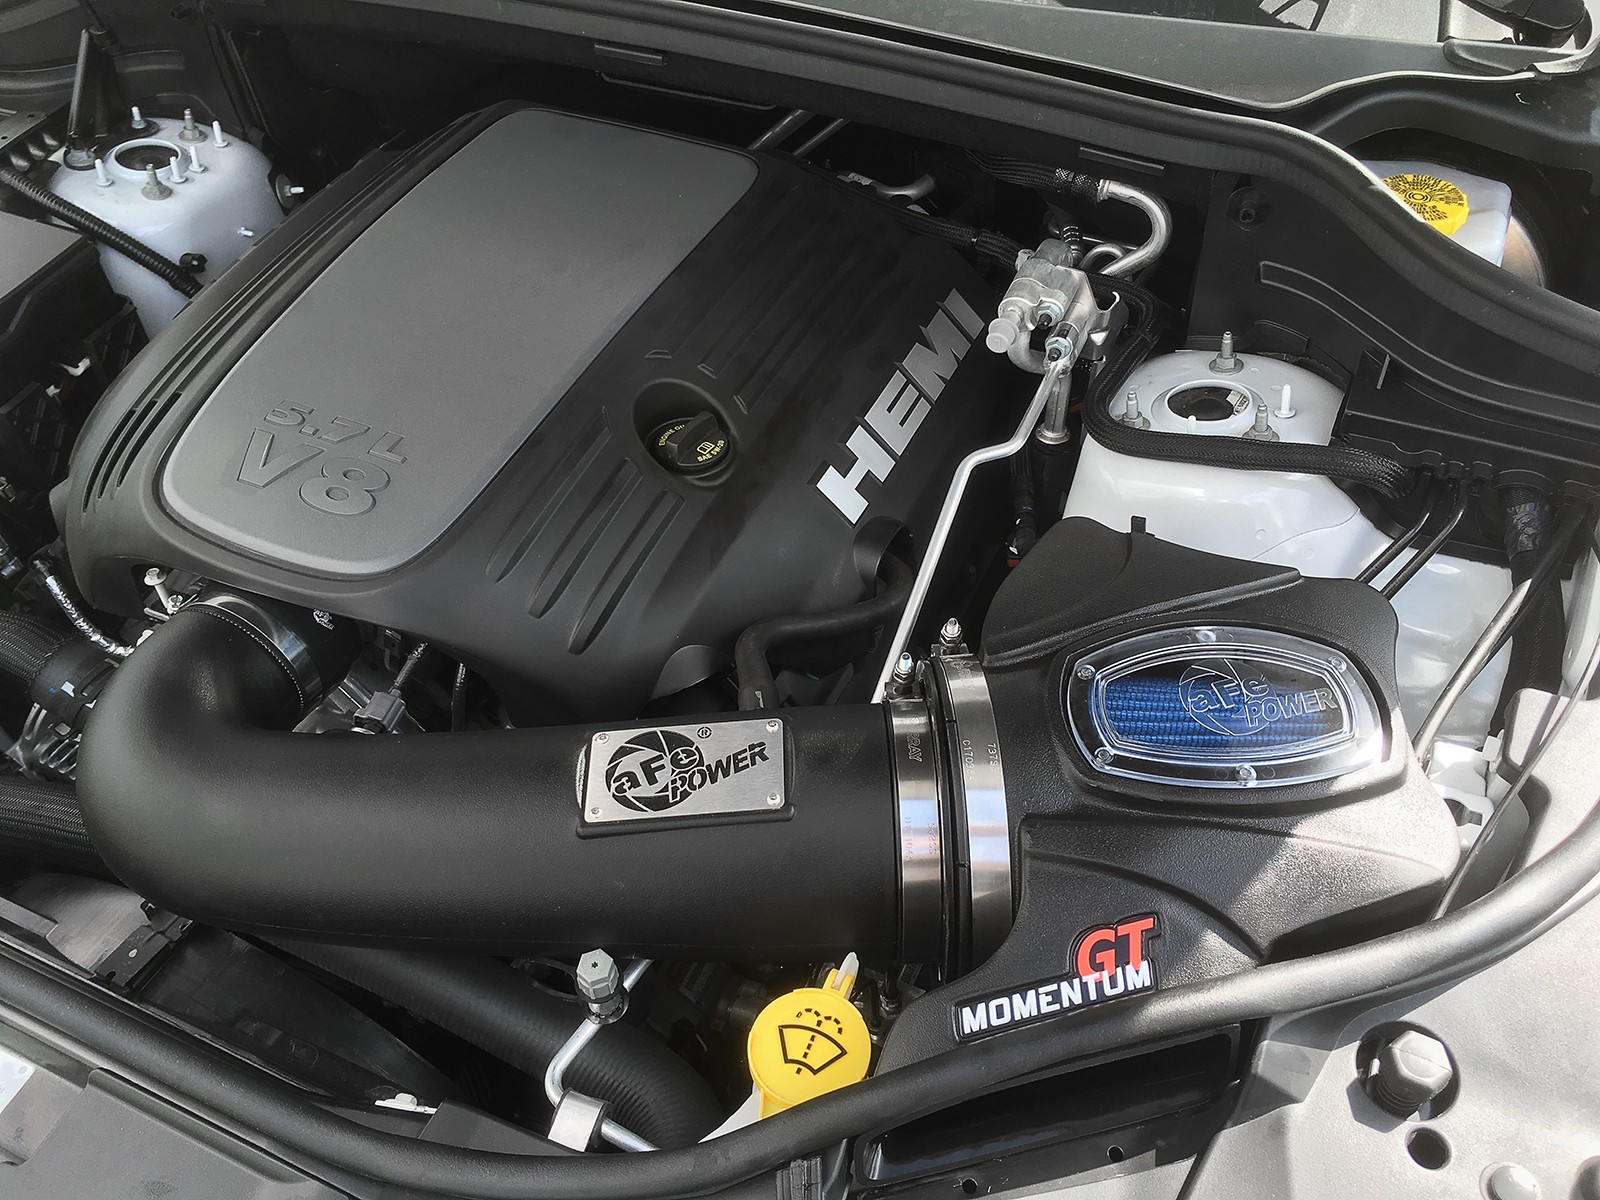 Momentum Gt Cold Air Intake System W Pro 5r Filter Media Afe Power